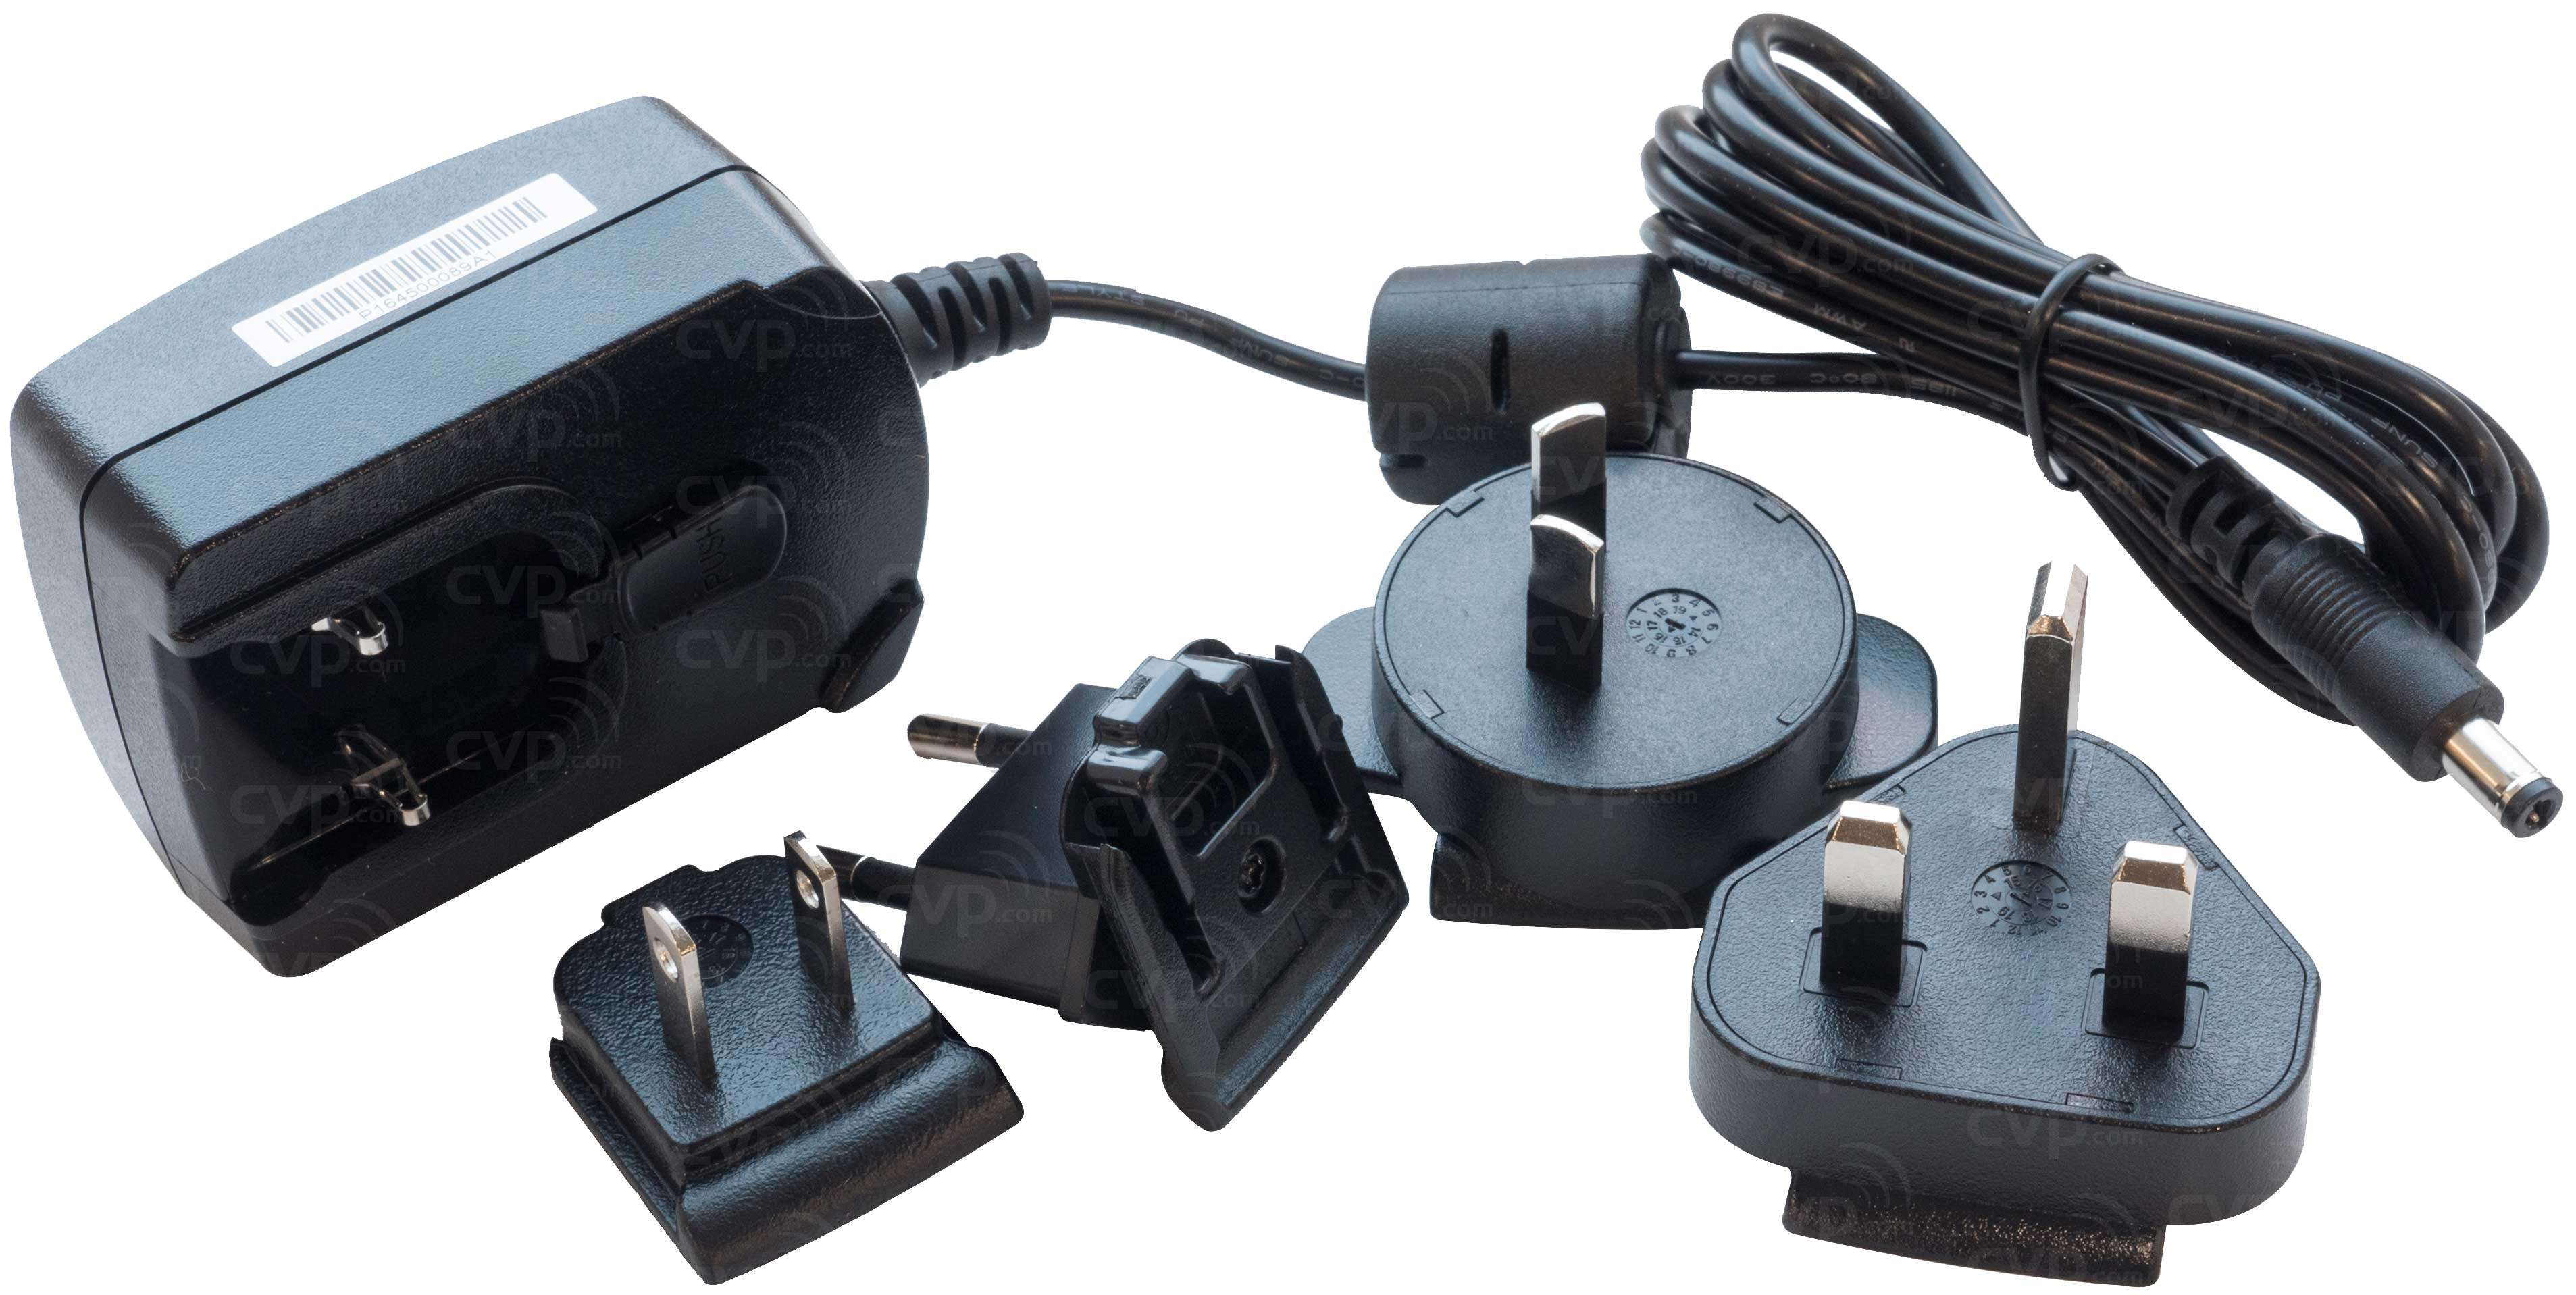 BMD Video Assist Power Supply